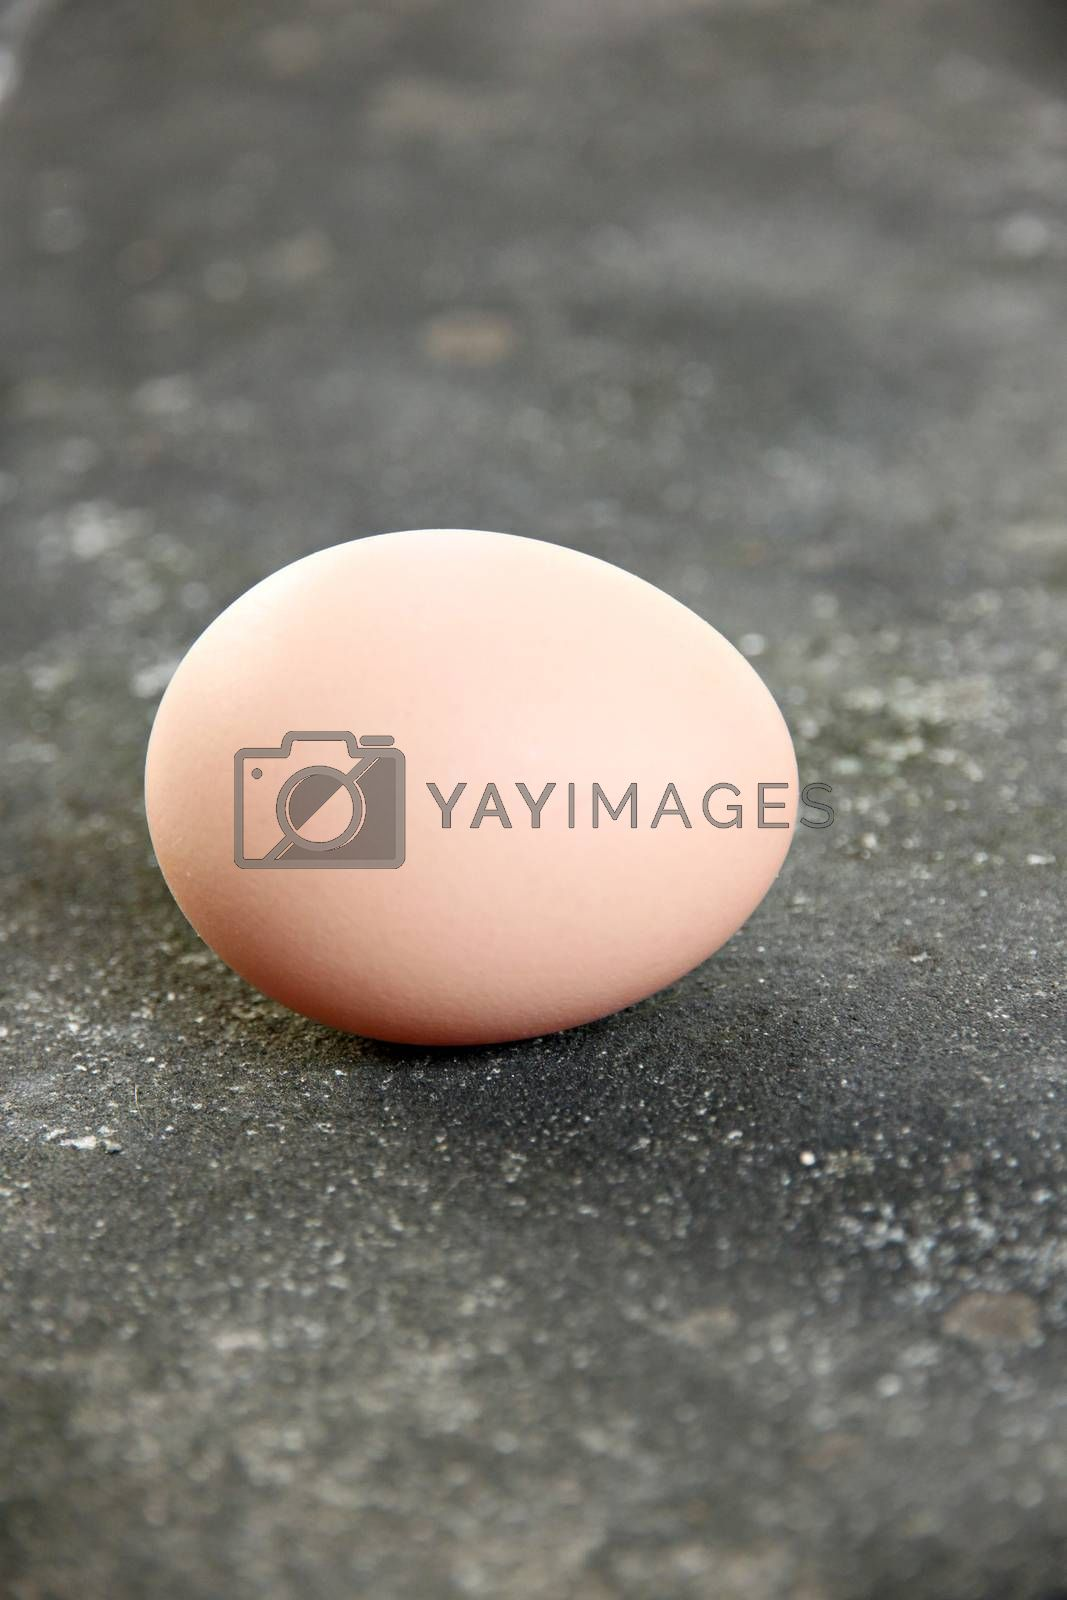 The Picture focus Eggs laid on the floor.